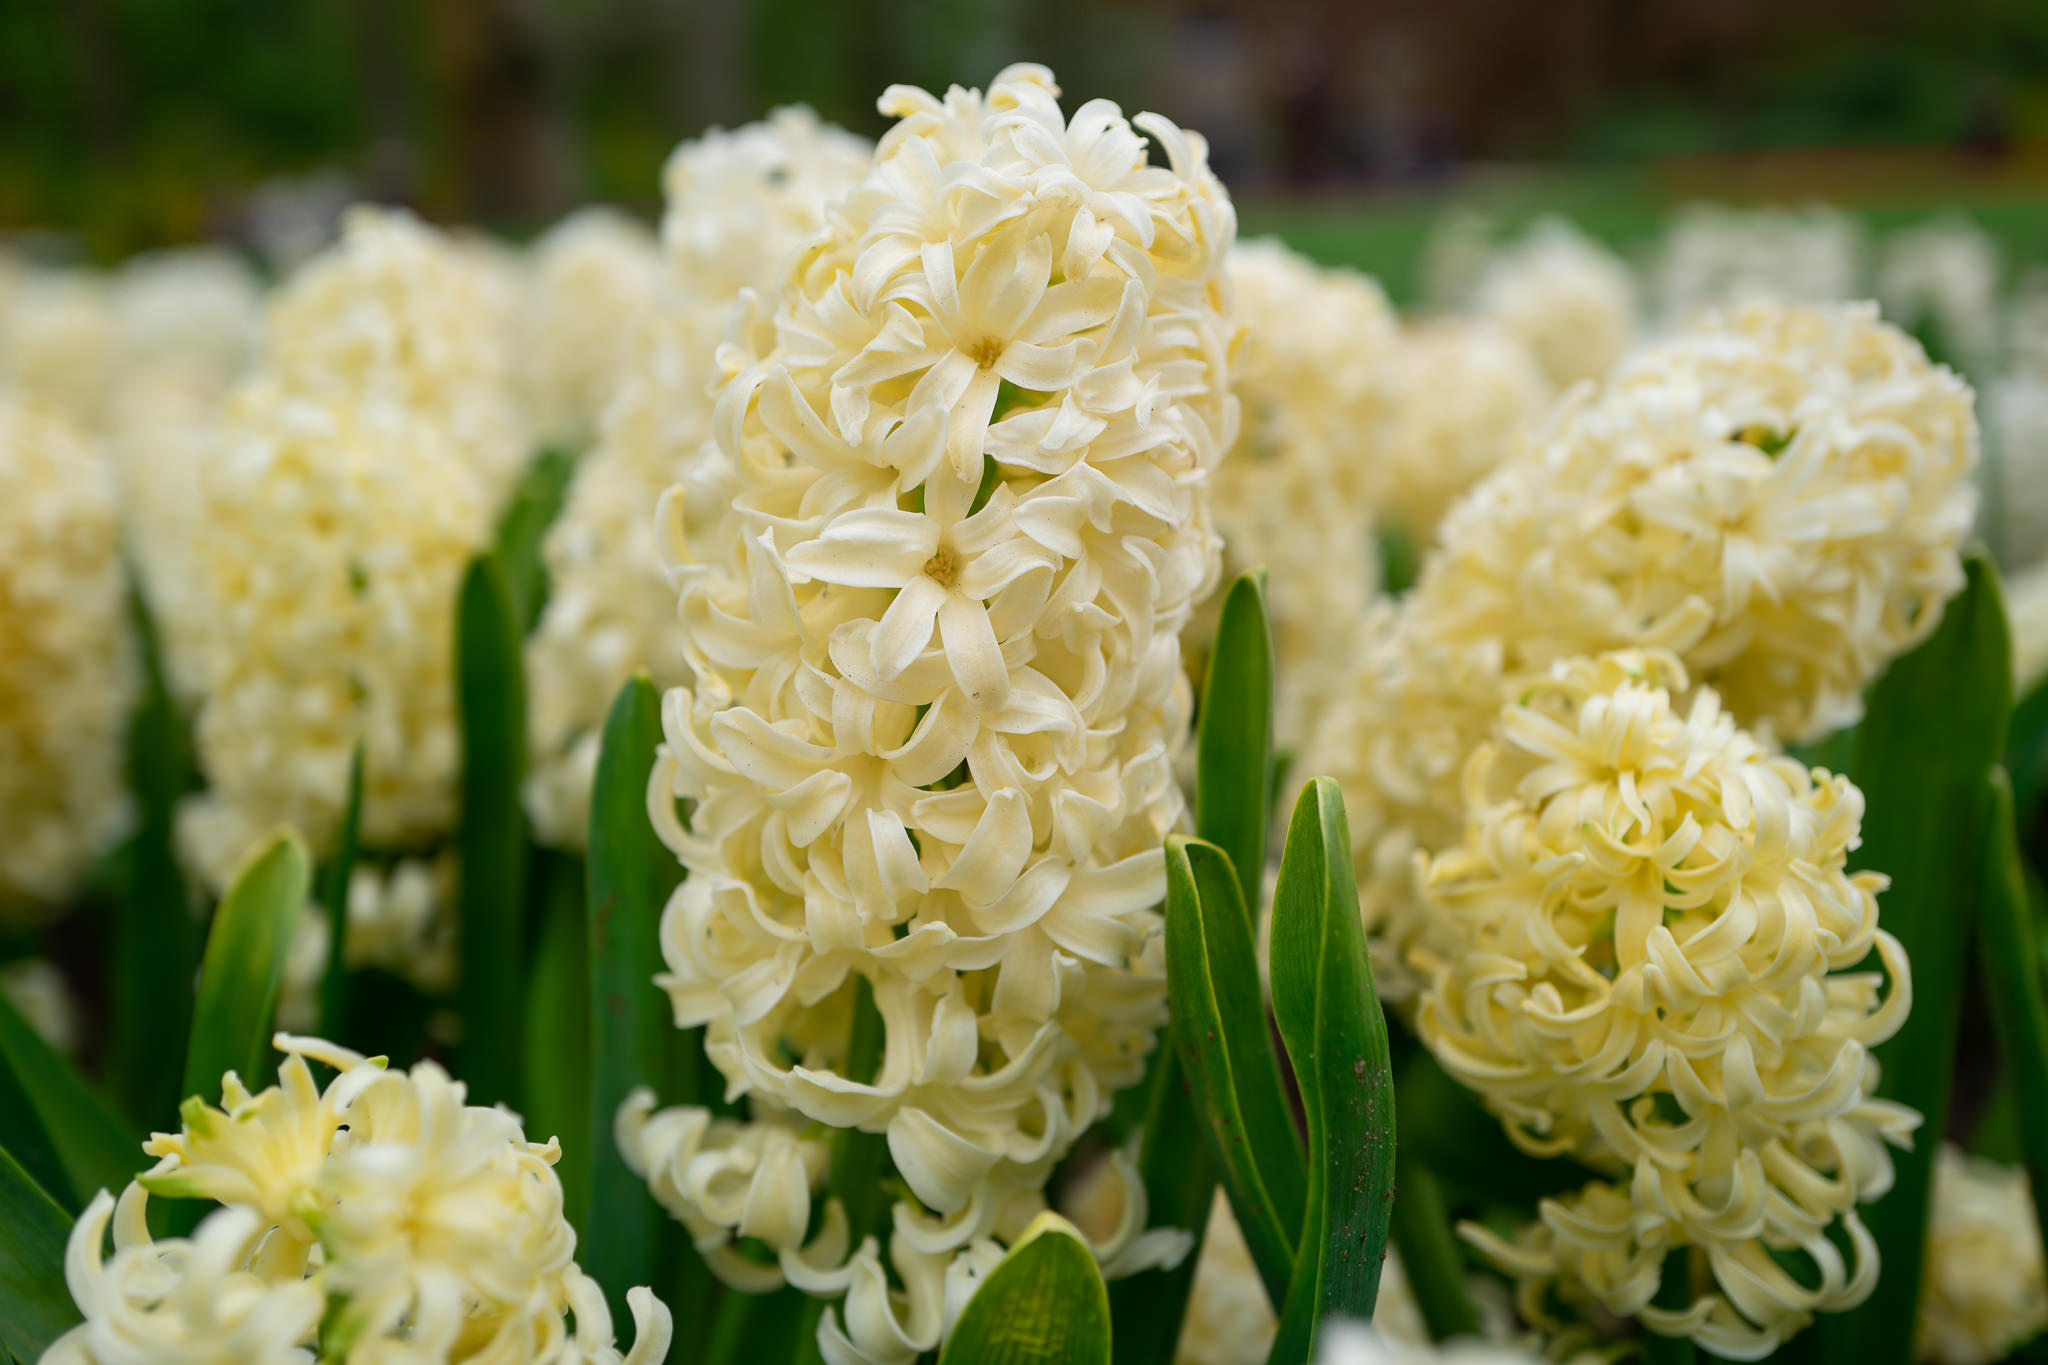 Hyacinth Bulbs Hyacinth City of Haarlem